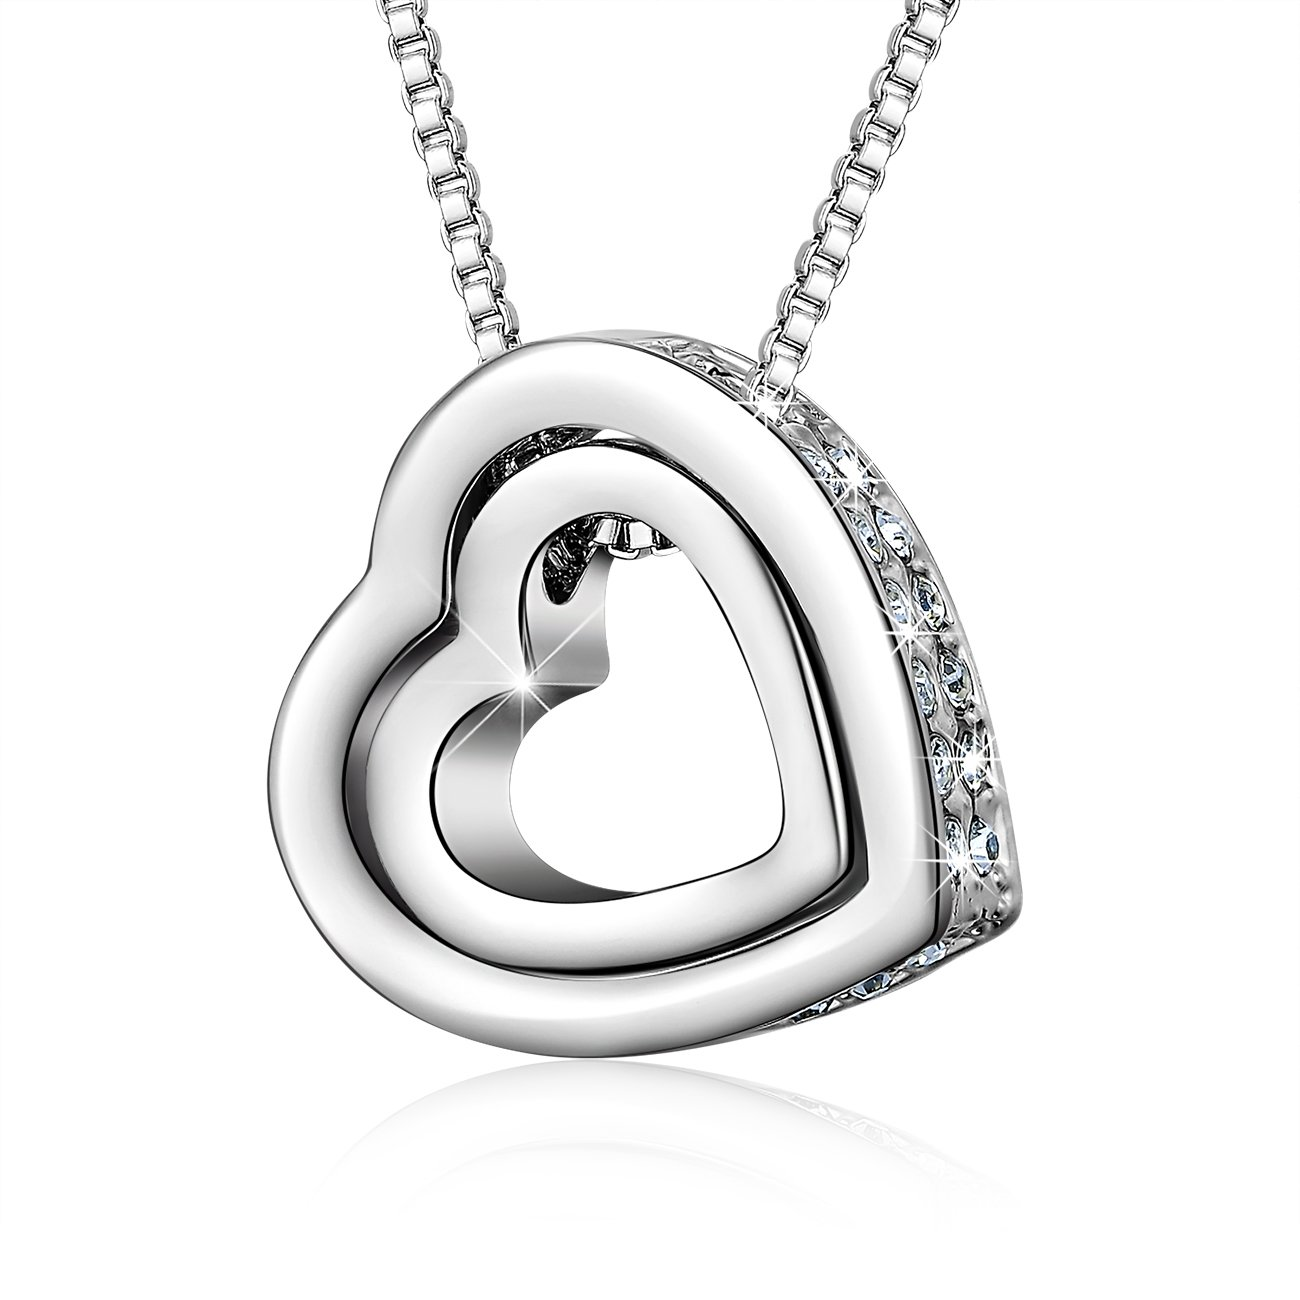 NinaMaid Gift of Love Double Heart Pendant Necklace White Crystals Jewelry 20 Inch